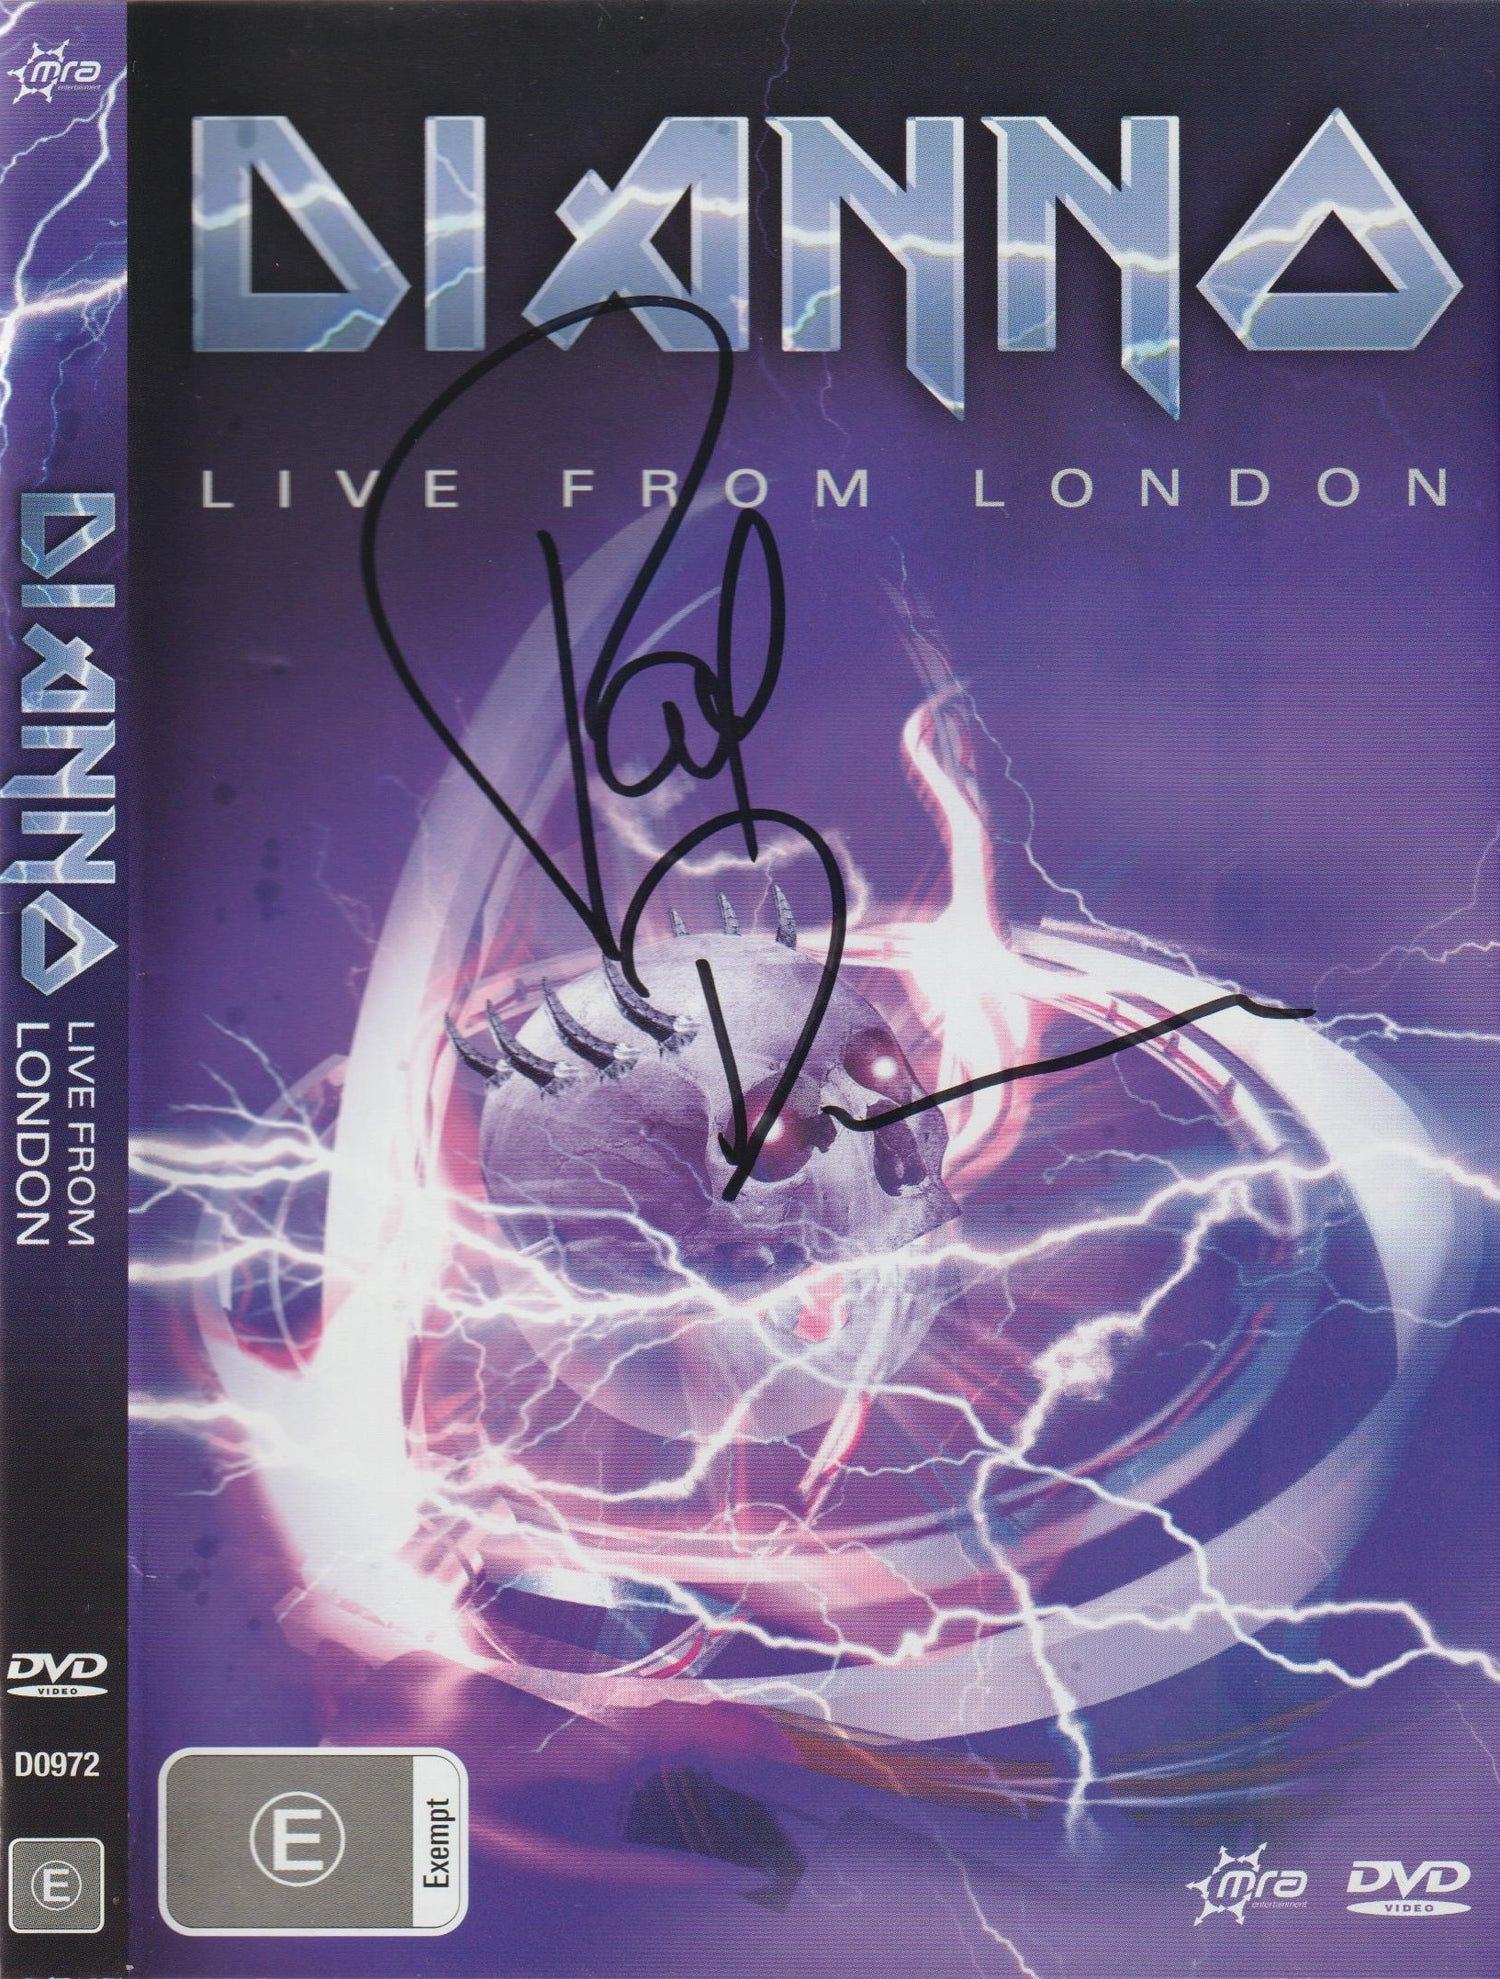 Image of PAUL DIANNO - Live From London - DVD Autographed